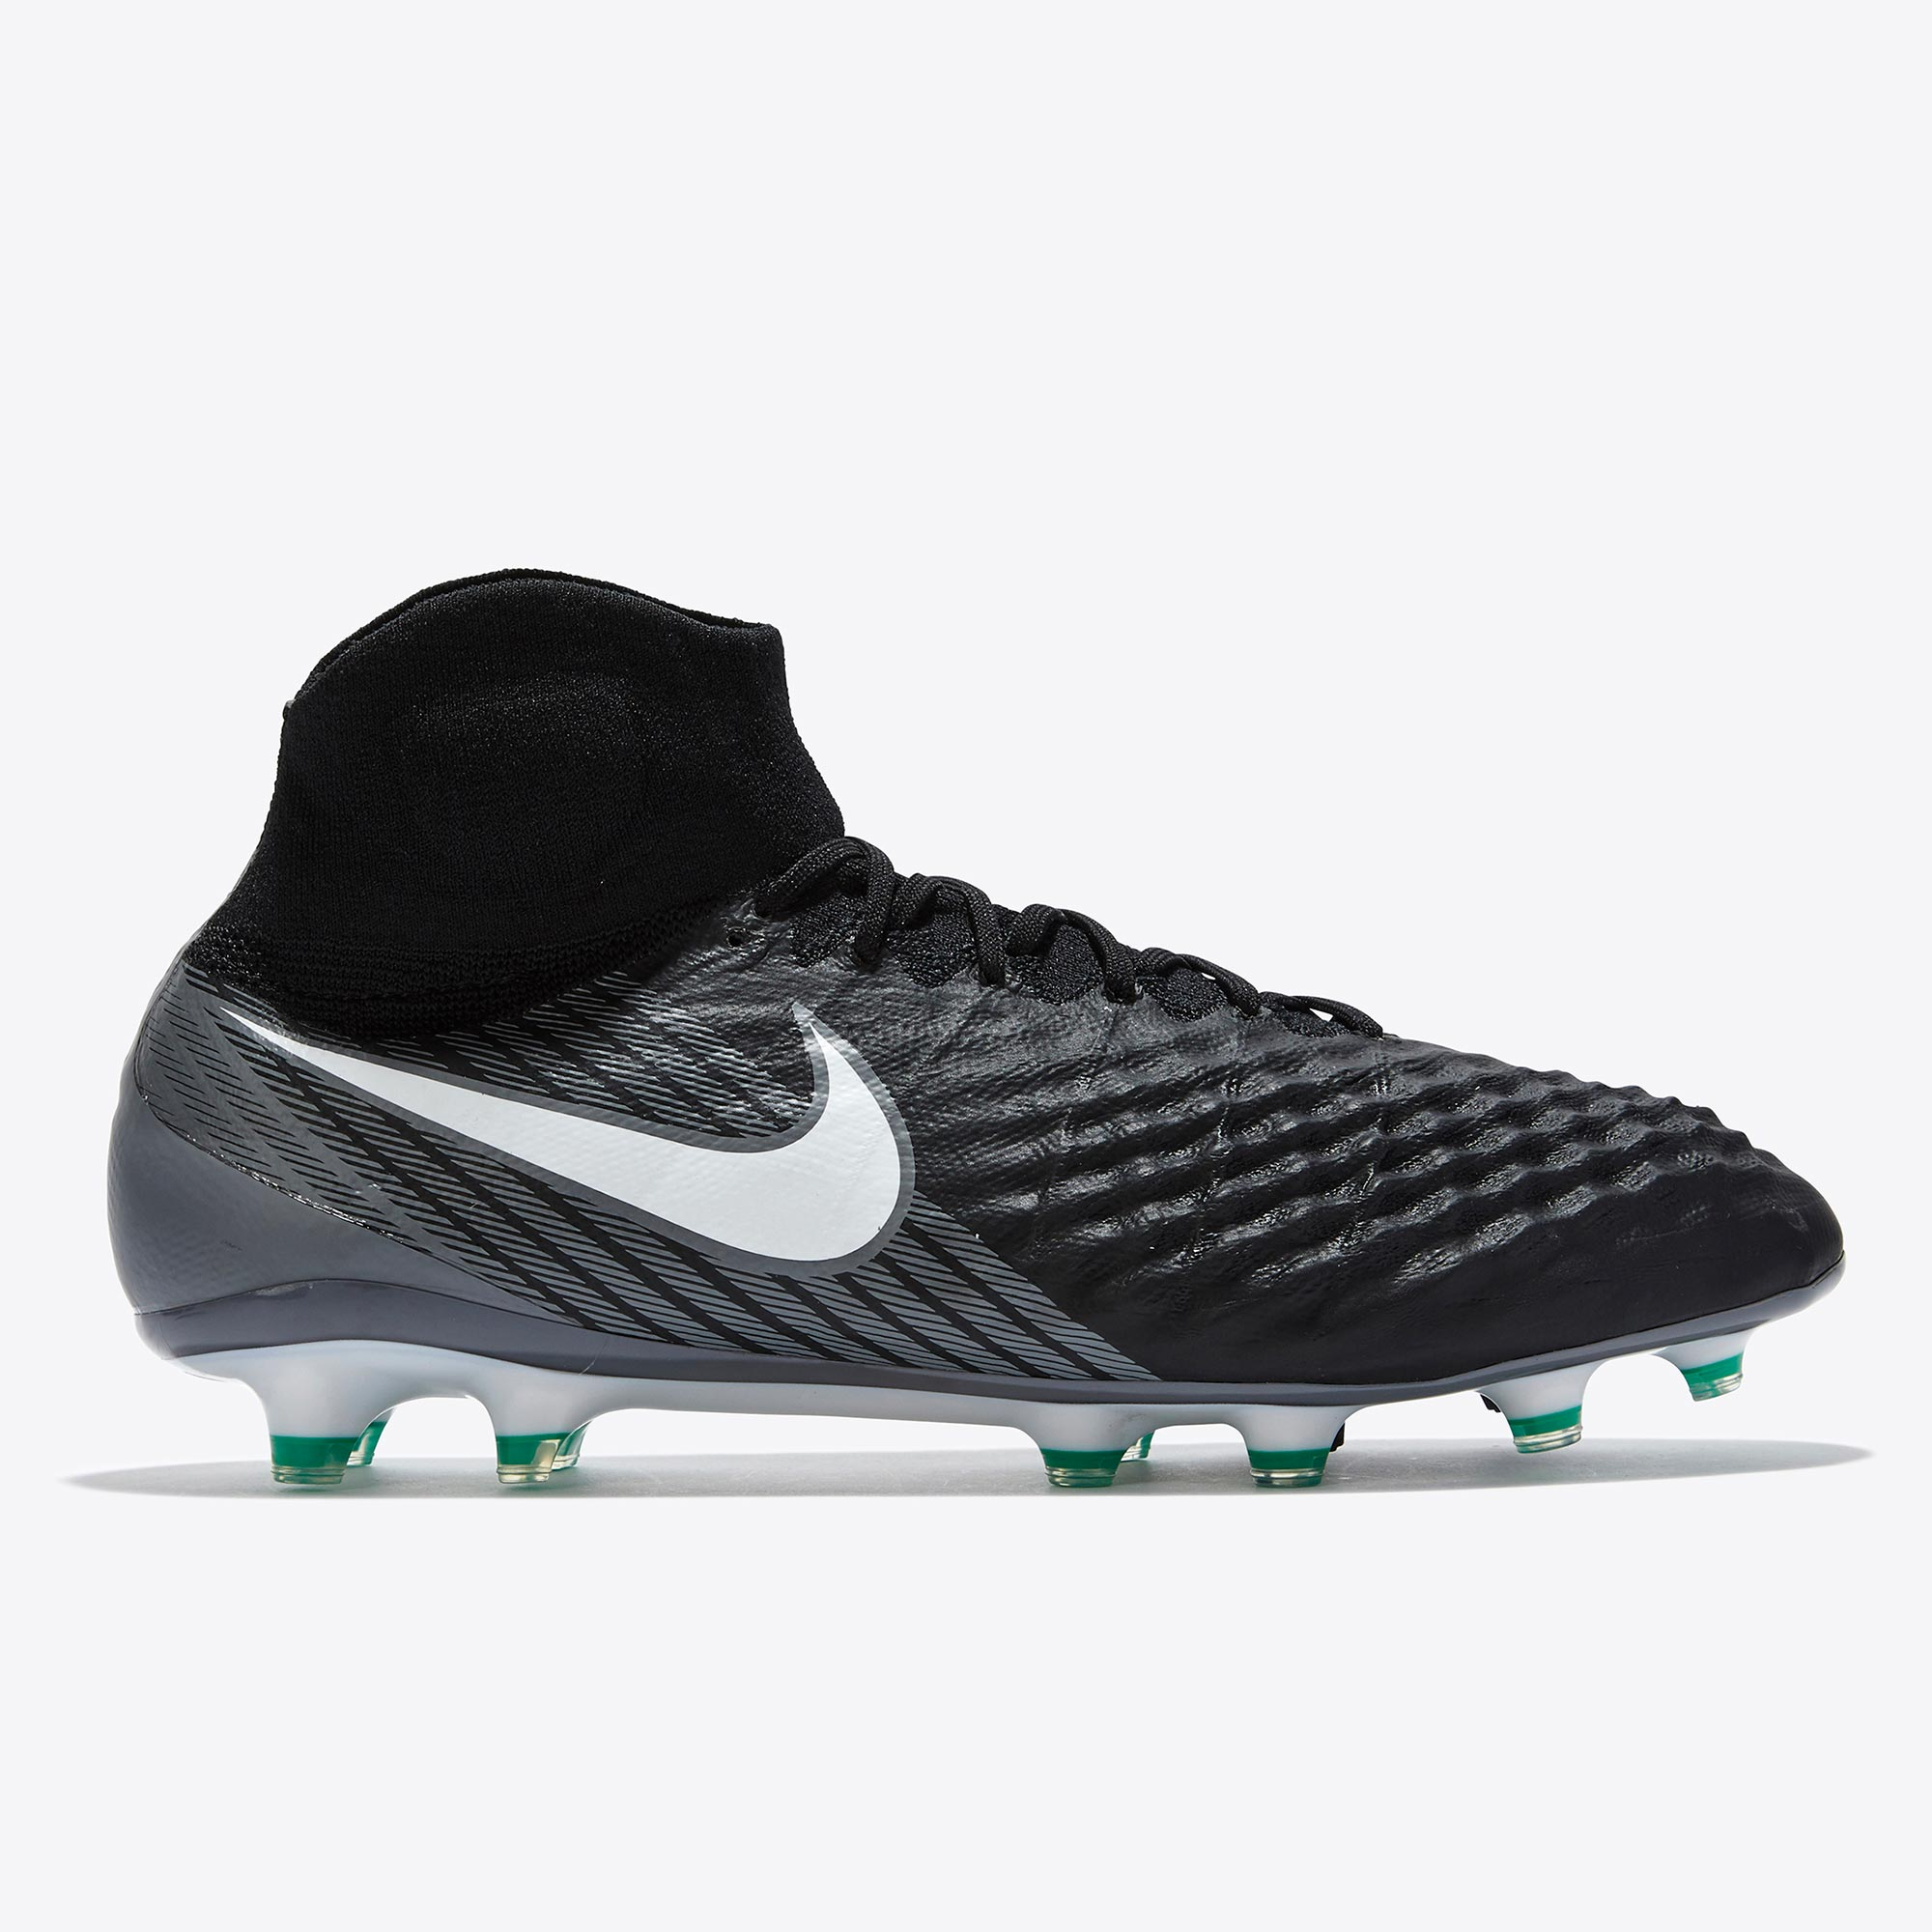 Nike Magista Obra II Firm Ground Football Boots - Black/White/Dark Gre